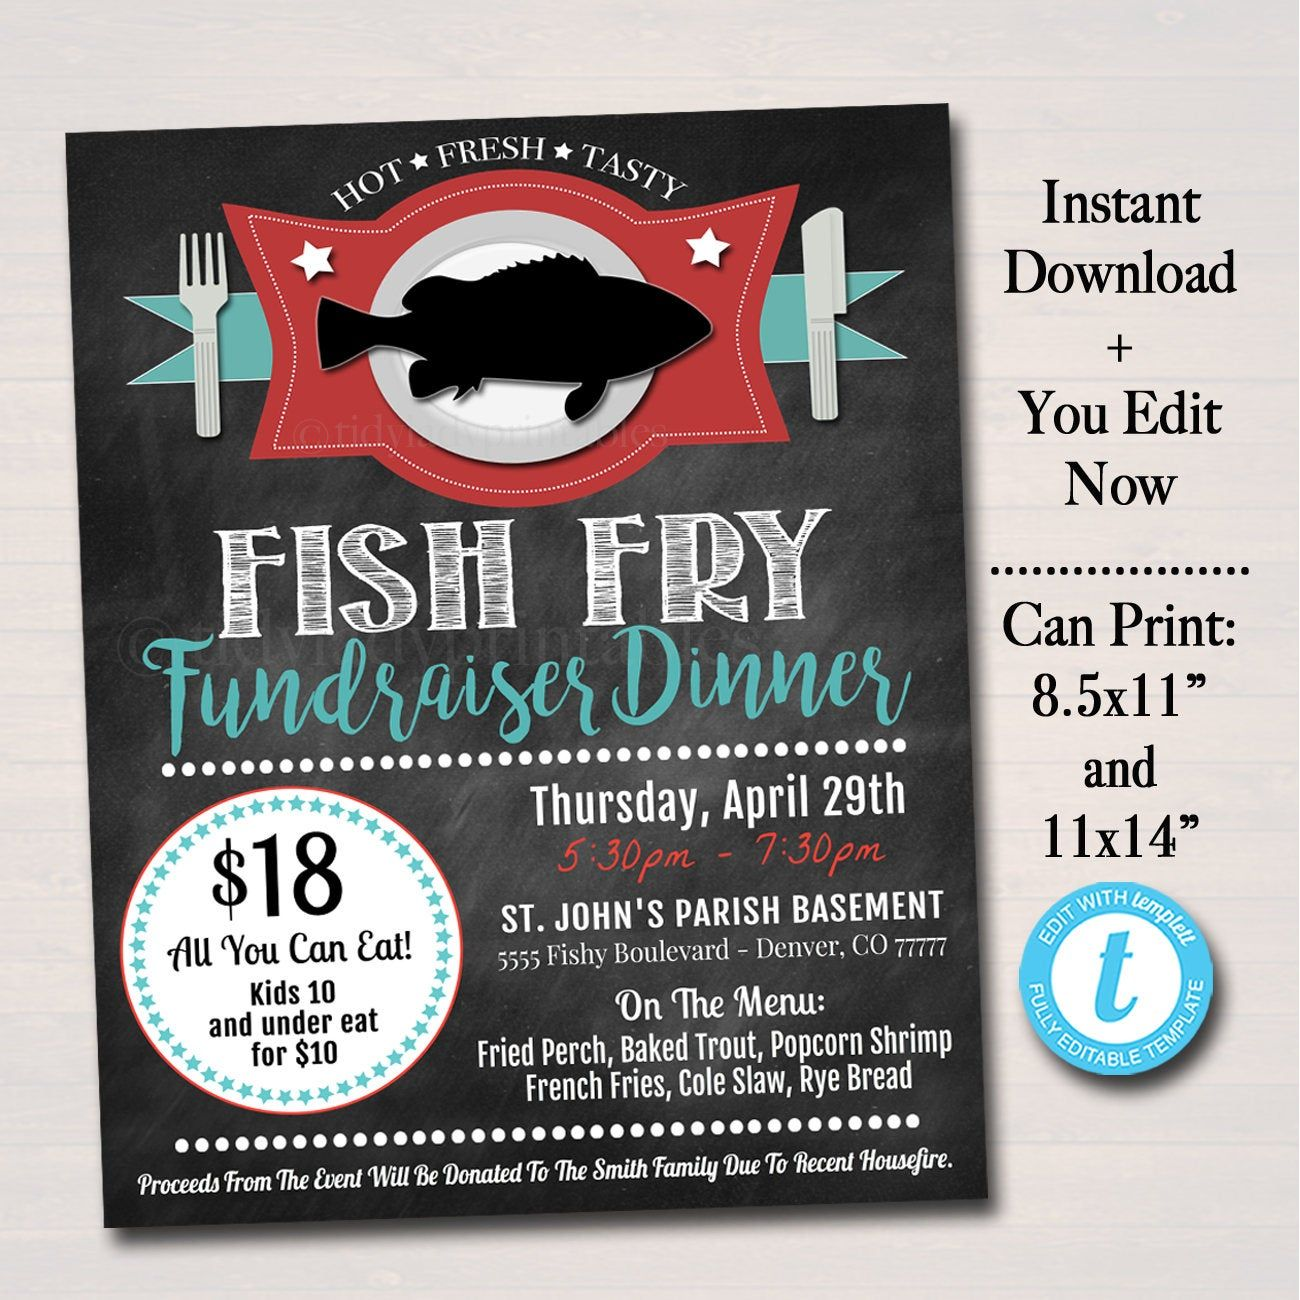 Editable Fish Fry Flyer Printable Pta Pto Flyer Benefit Etsy Fun Fundraisers Charity Work Ideas Fried Fish Free fish fry flyer template